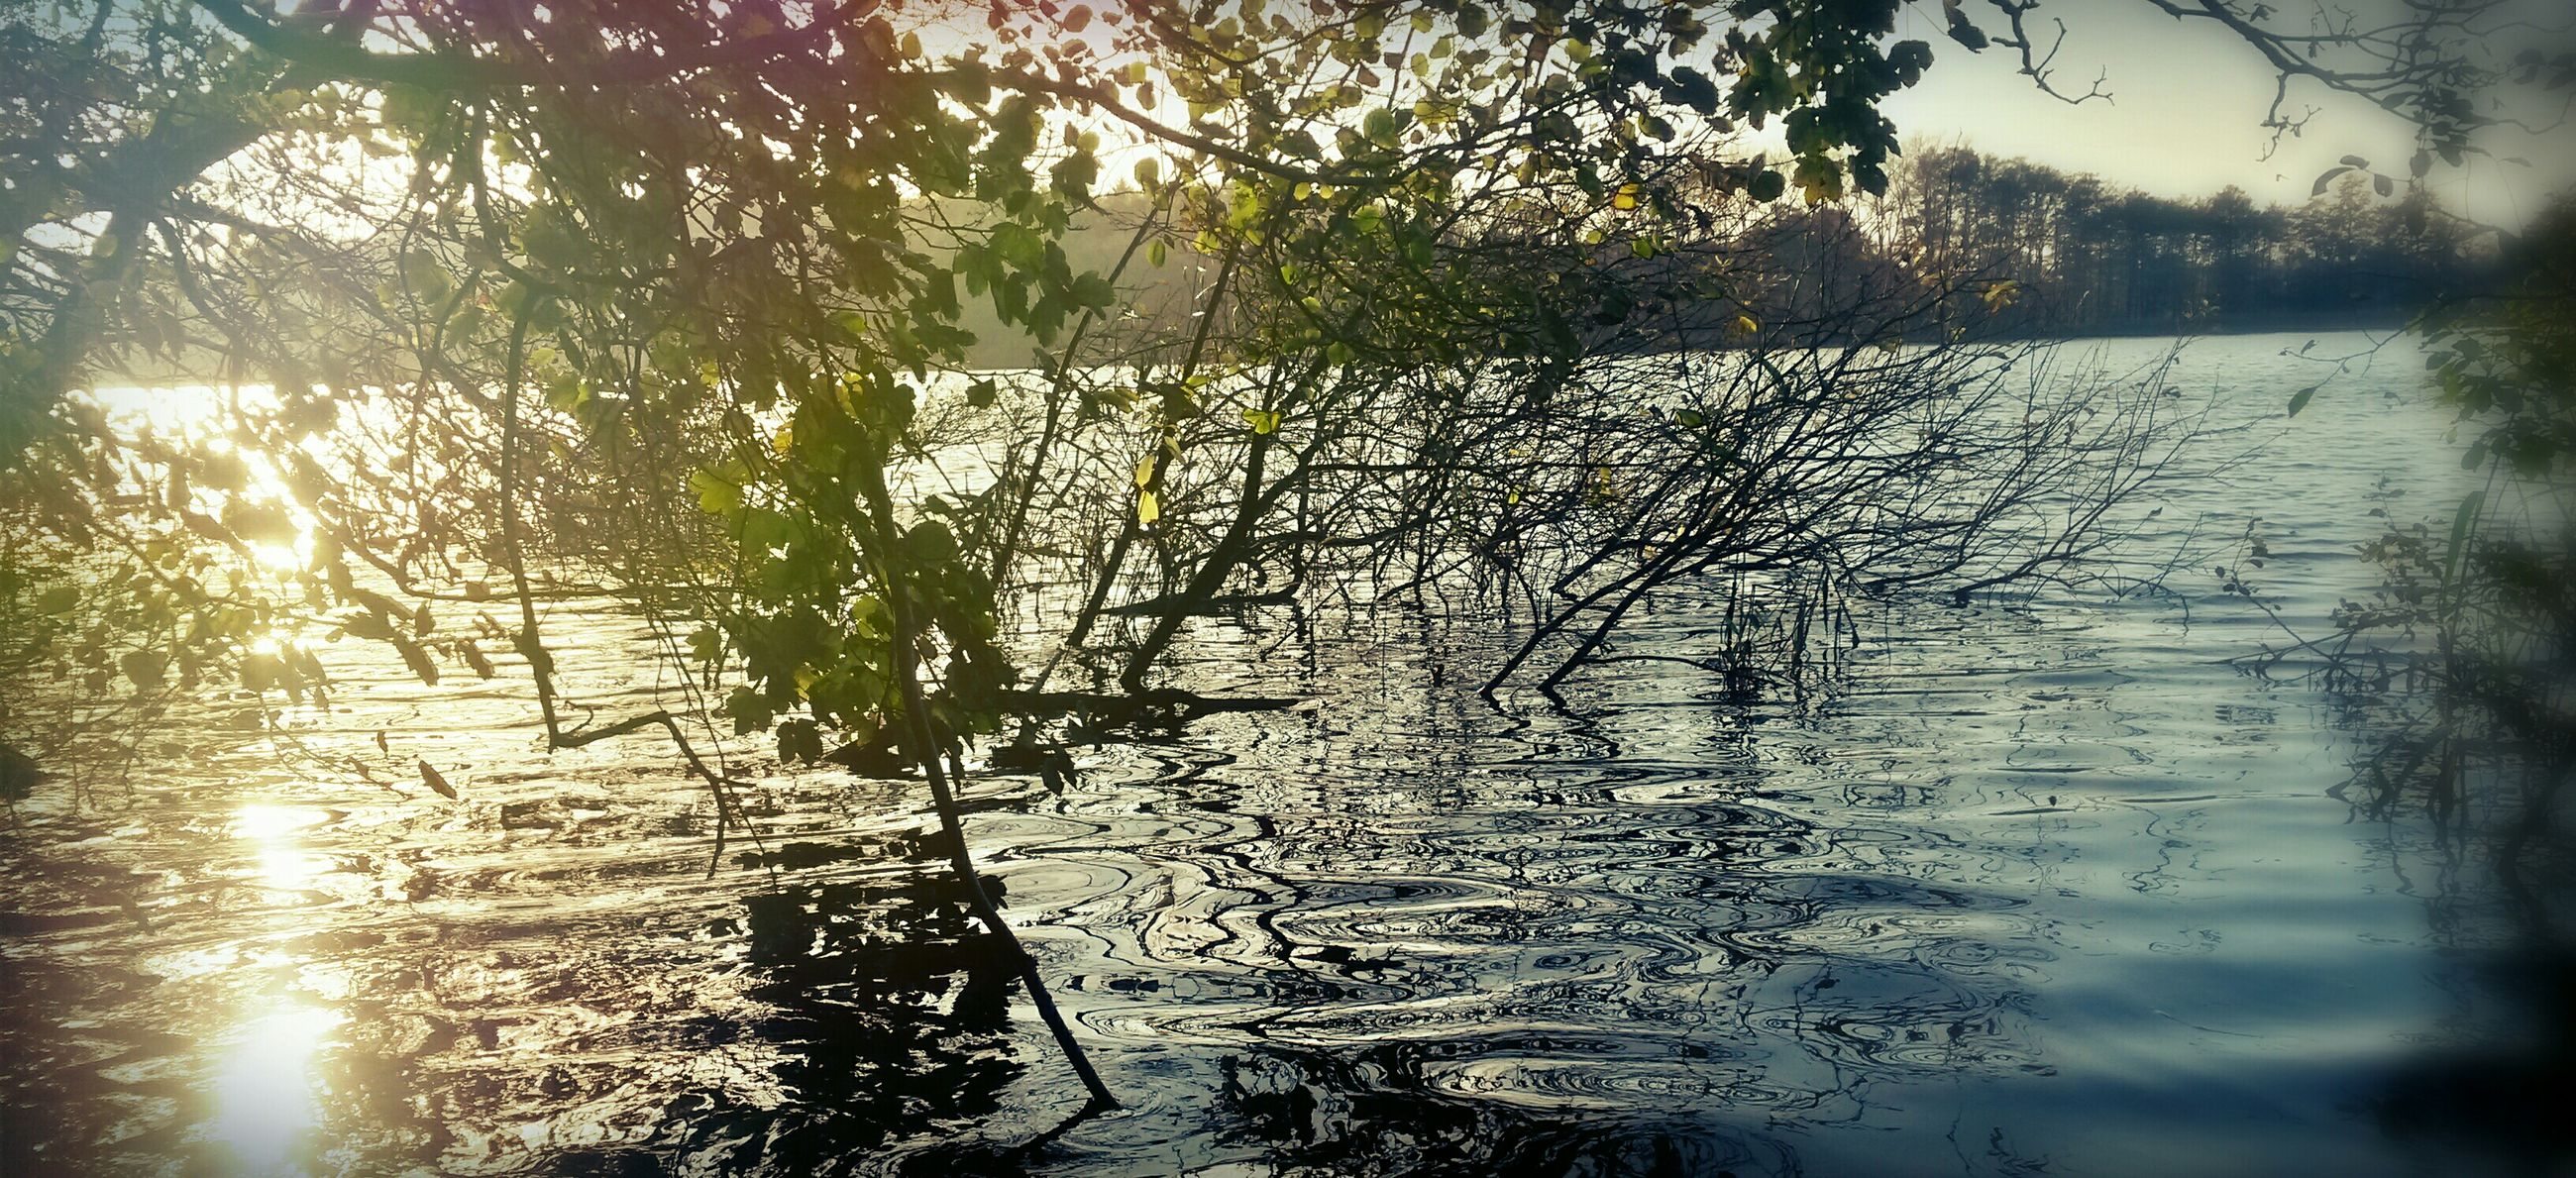 water, reflection, tree, lake, sun, tranquility, sunlight, nature, tranquil scene, branch, beauty in nature, growth, river, sunbeam, scenics, sunset, plant, outdoors, lens flare, silhouette